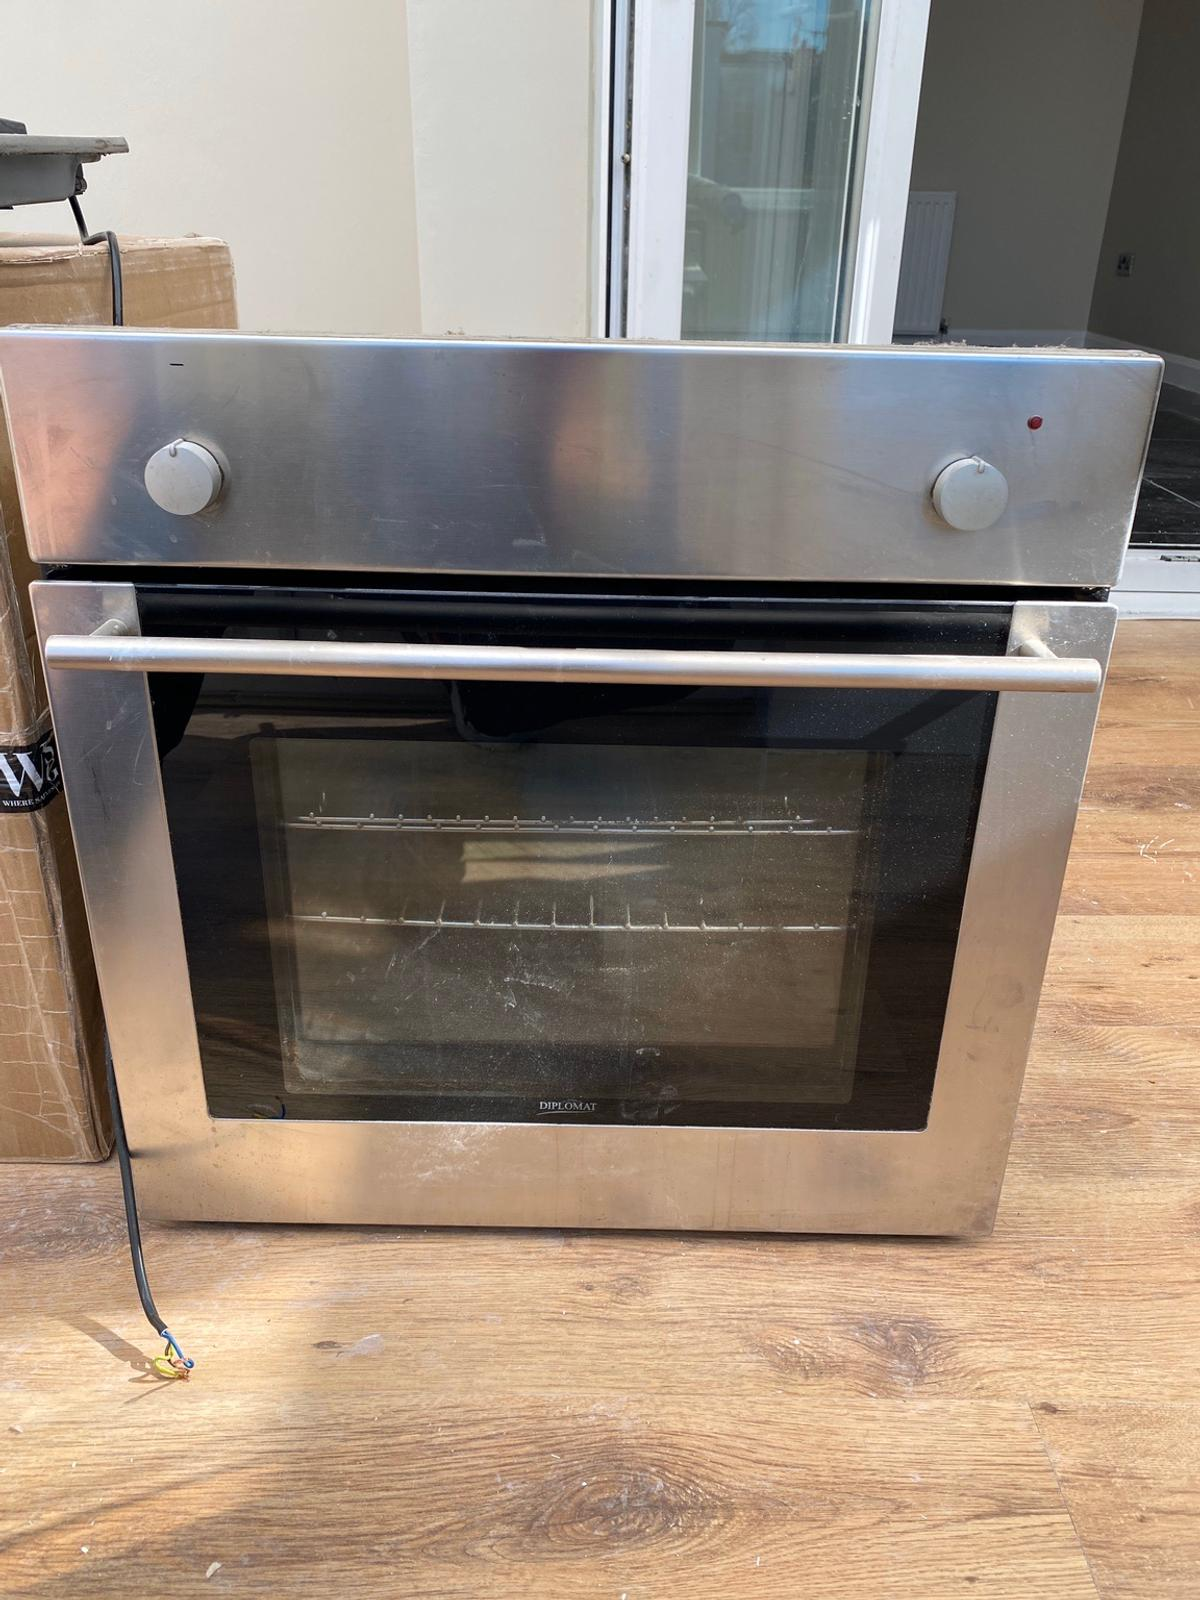 Diplomat cooker and gas hob. Good condition. All working.  Any questions please ask